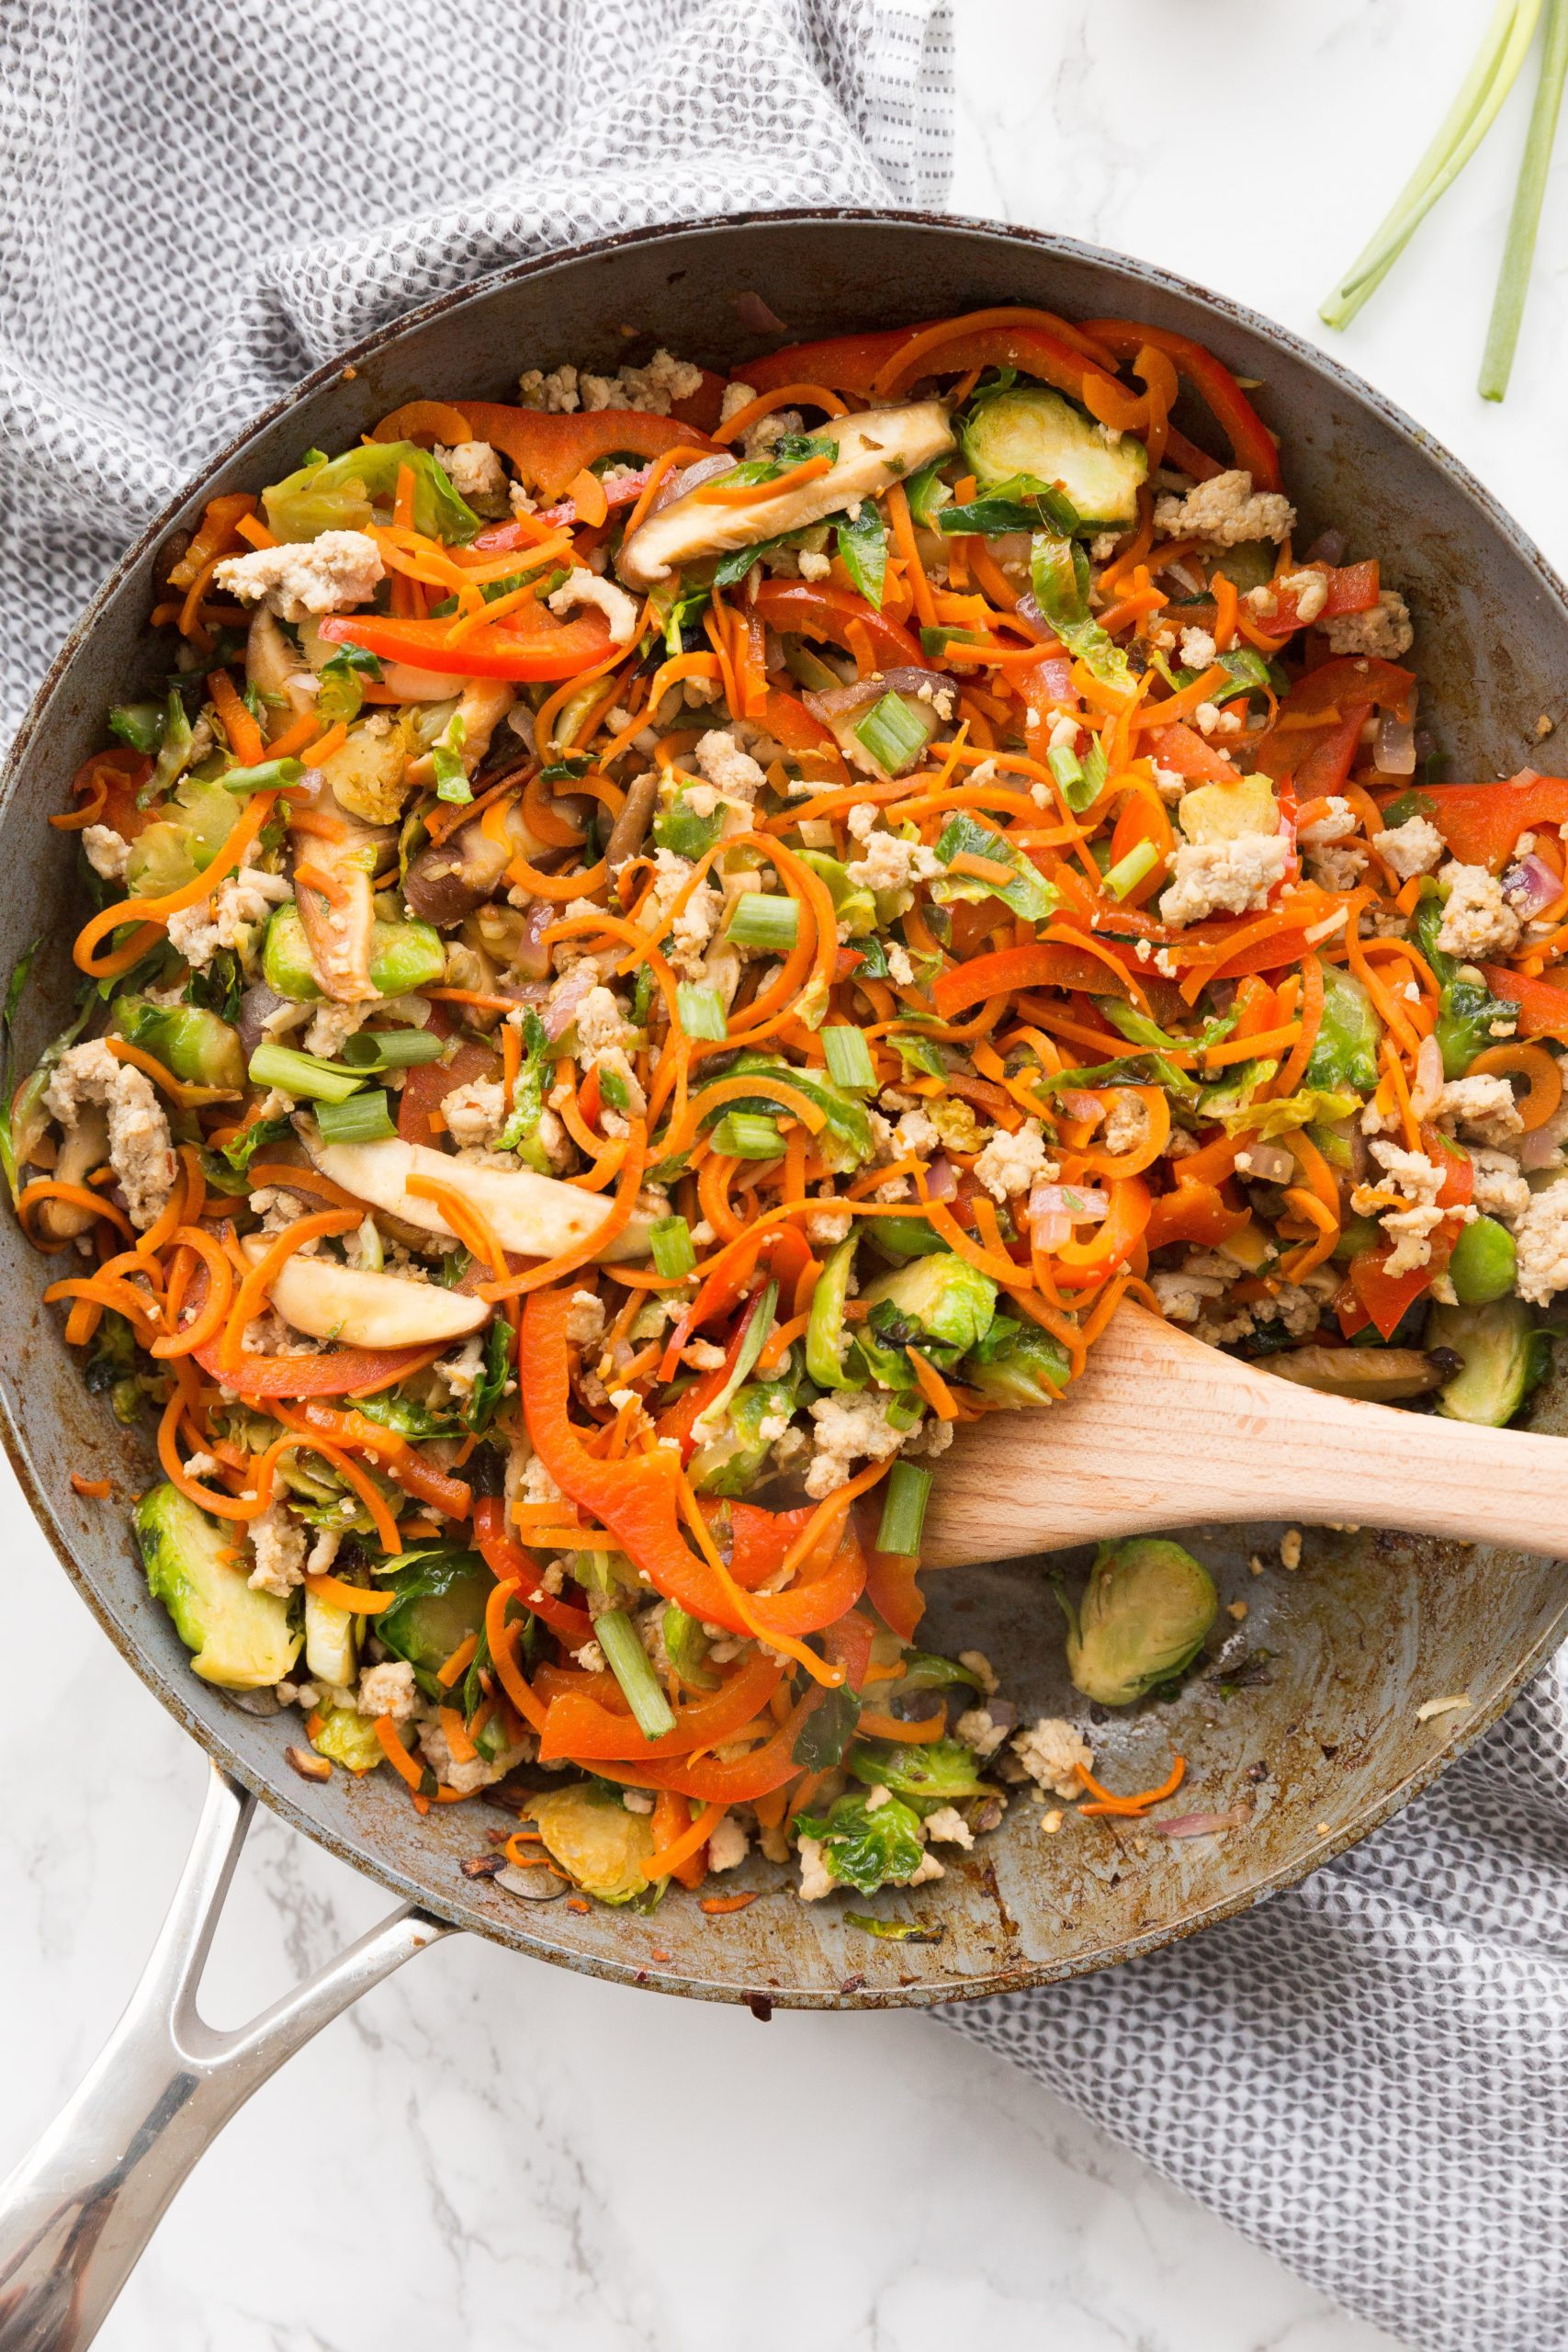 Spicy Stir-Fried Chicken and Shredded Brussels Bowls